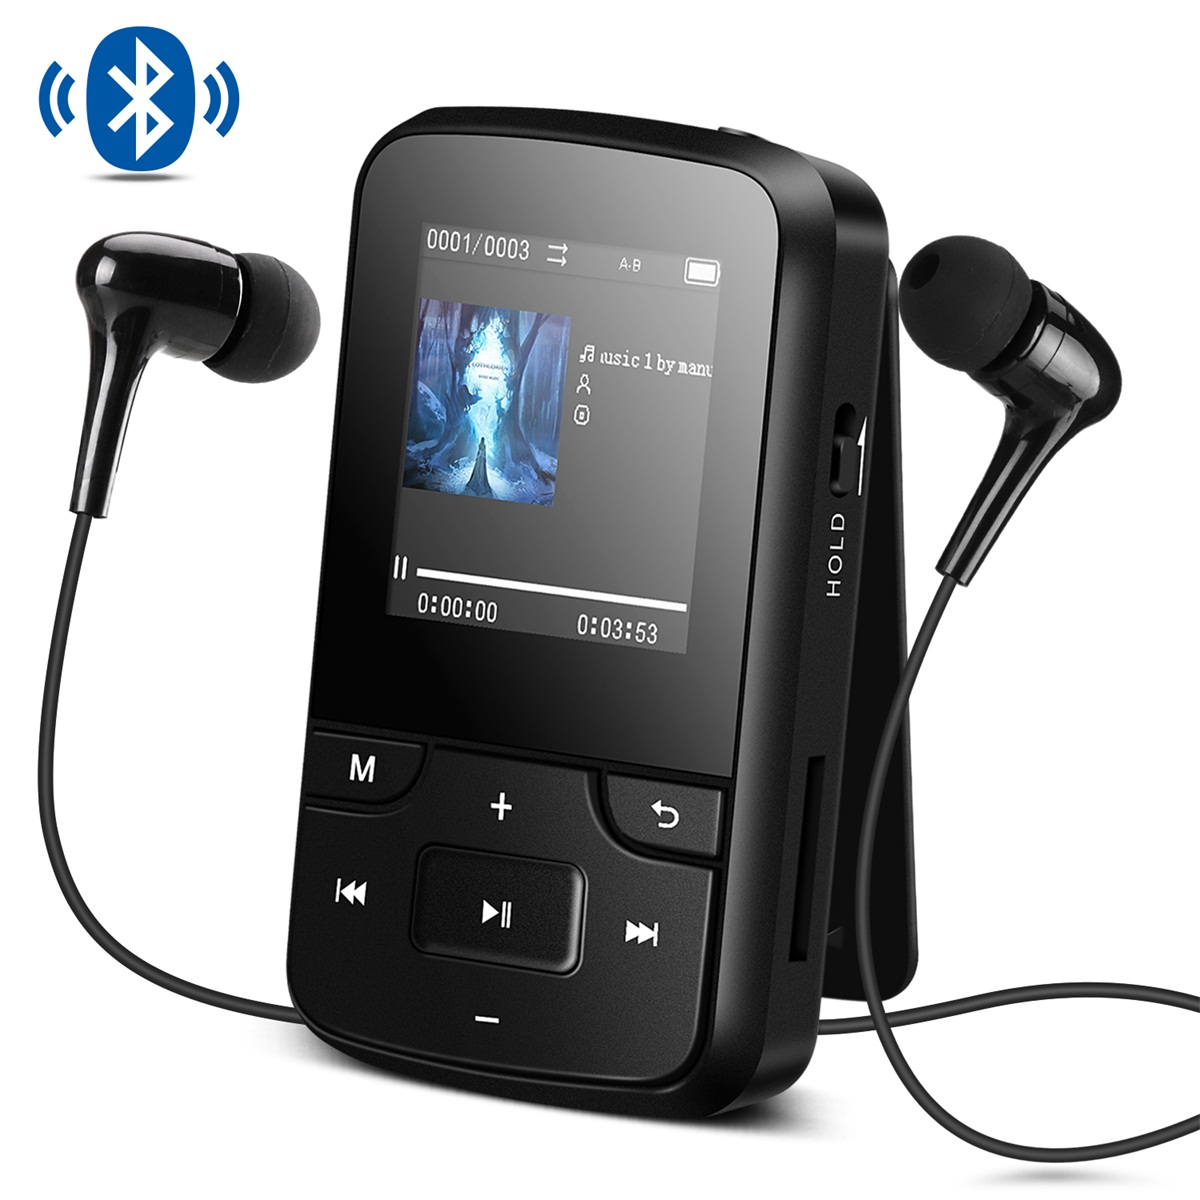 It is correspondence black G6 to the up to 128GB micro SD card attached to  AGPTEK music player music player Bluetooth deployment clip mini-MP3 player